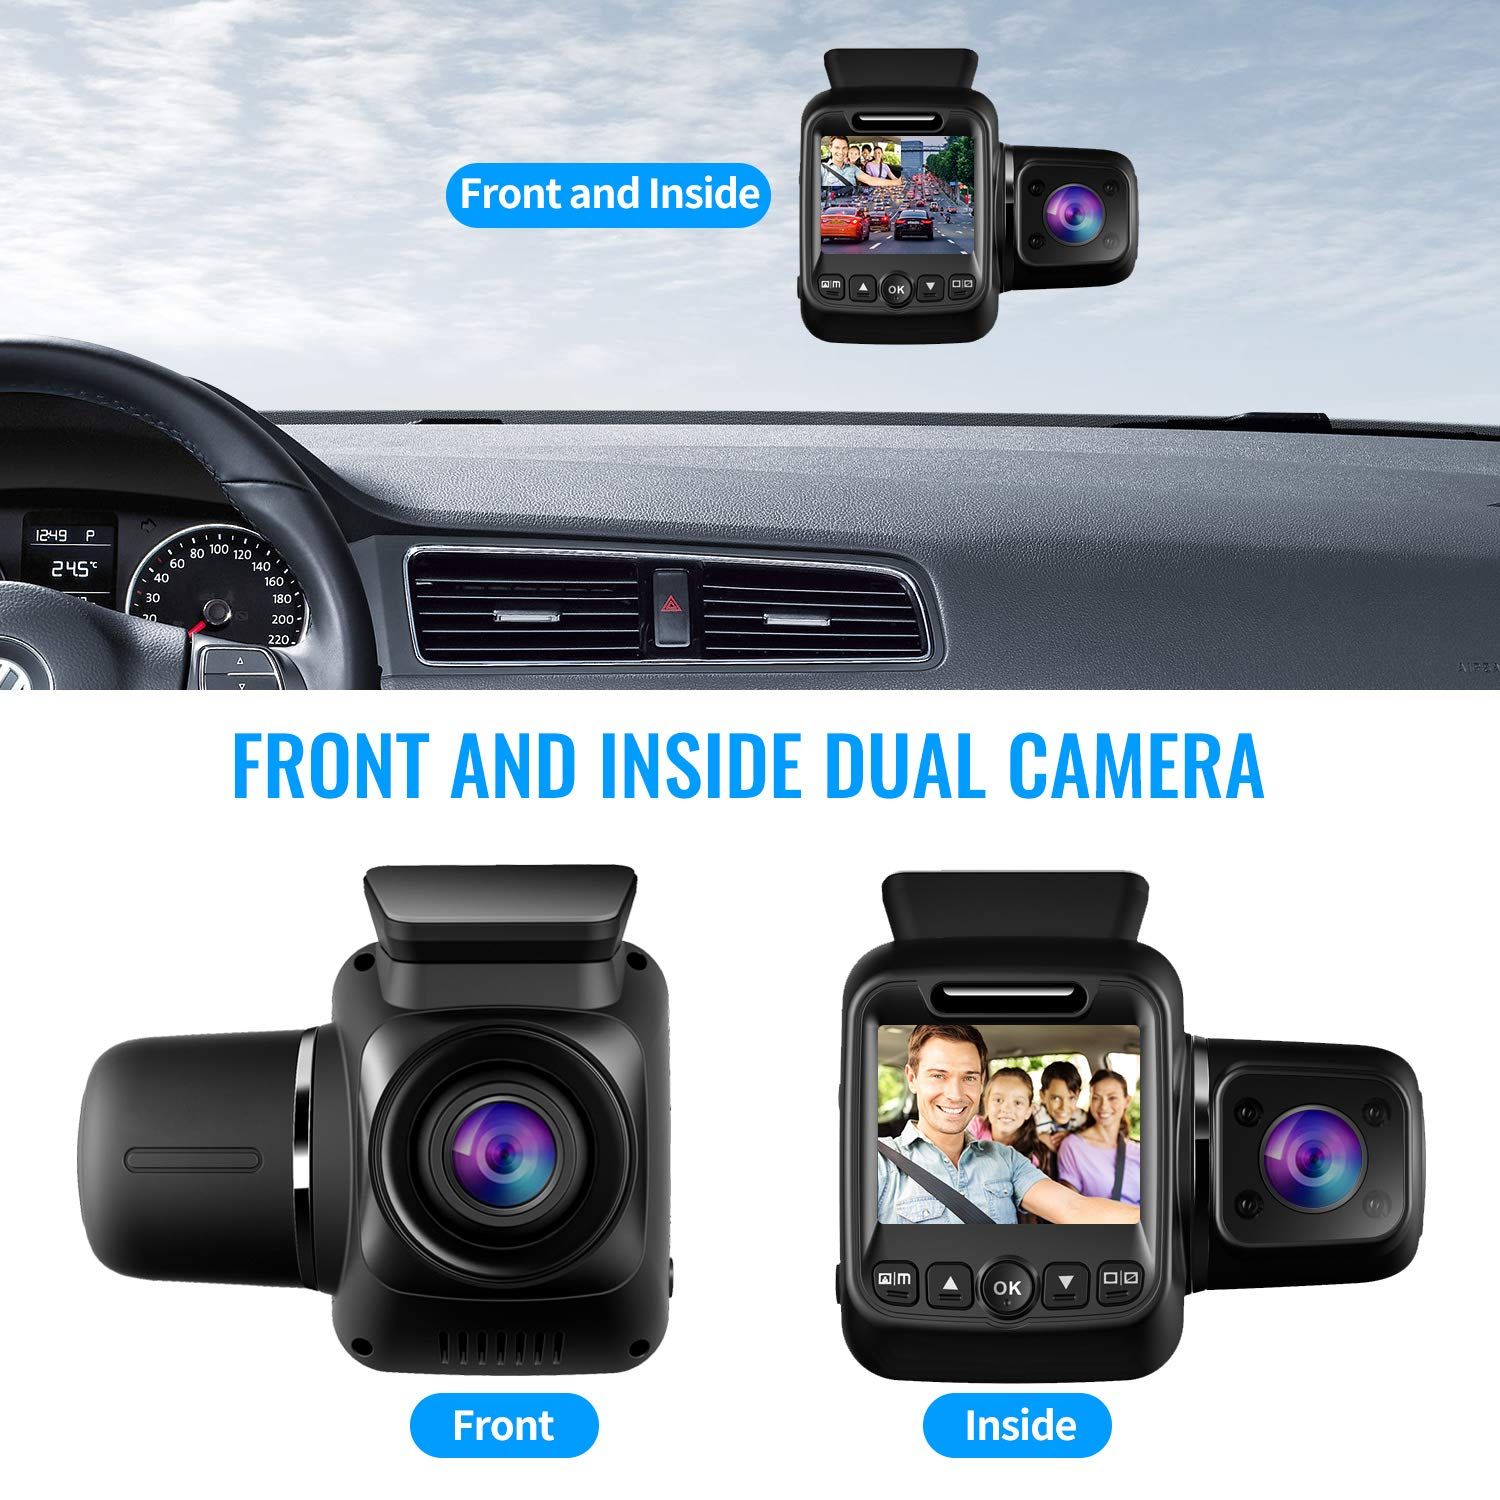 Upgraded Pruveeo P3 Dash Cam with Infrared Night Vision, Built-in GPS, WiFi, Dual 1080P Front and Inside, Dash Camera for Cars Uber Lyft Truck Taxi by Pruveeo (Image #2)